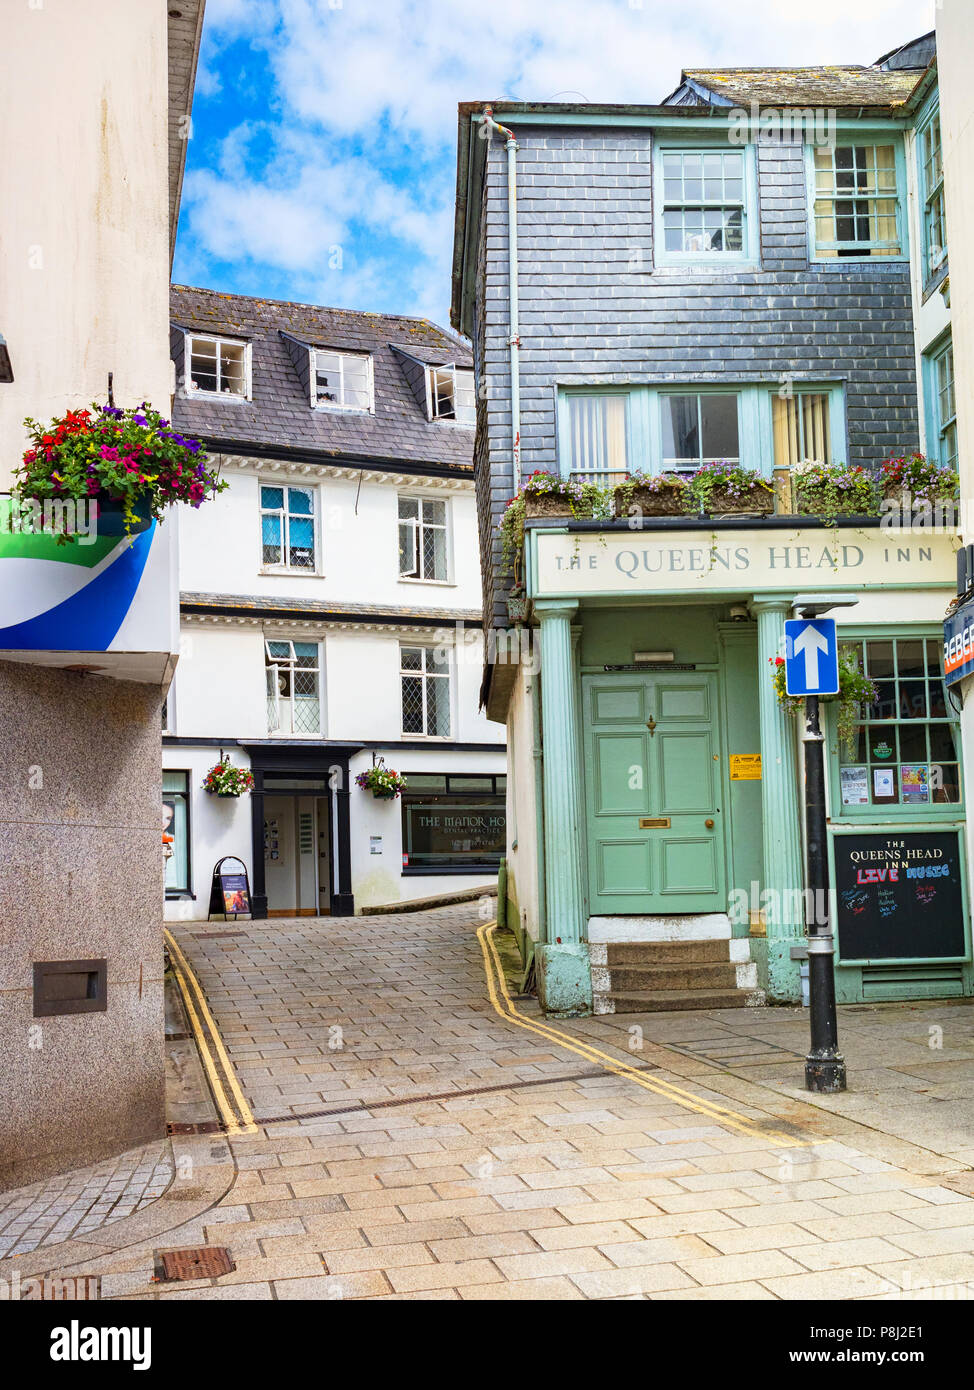 11 June 2018: St Austell, Cornwall, UK - The Queen's Head hotel in North Street. - Stock Image